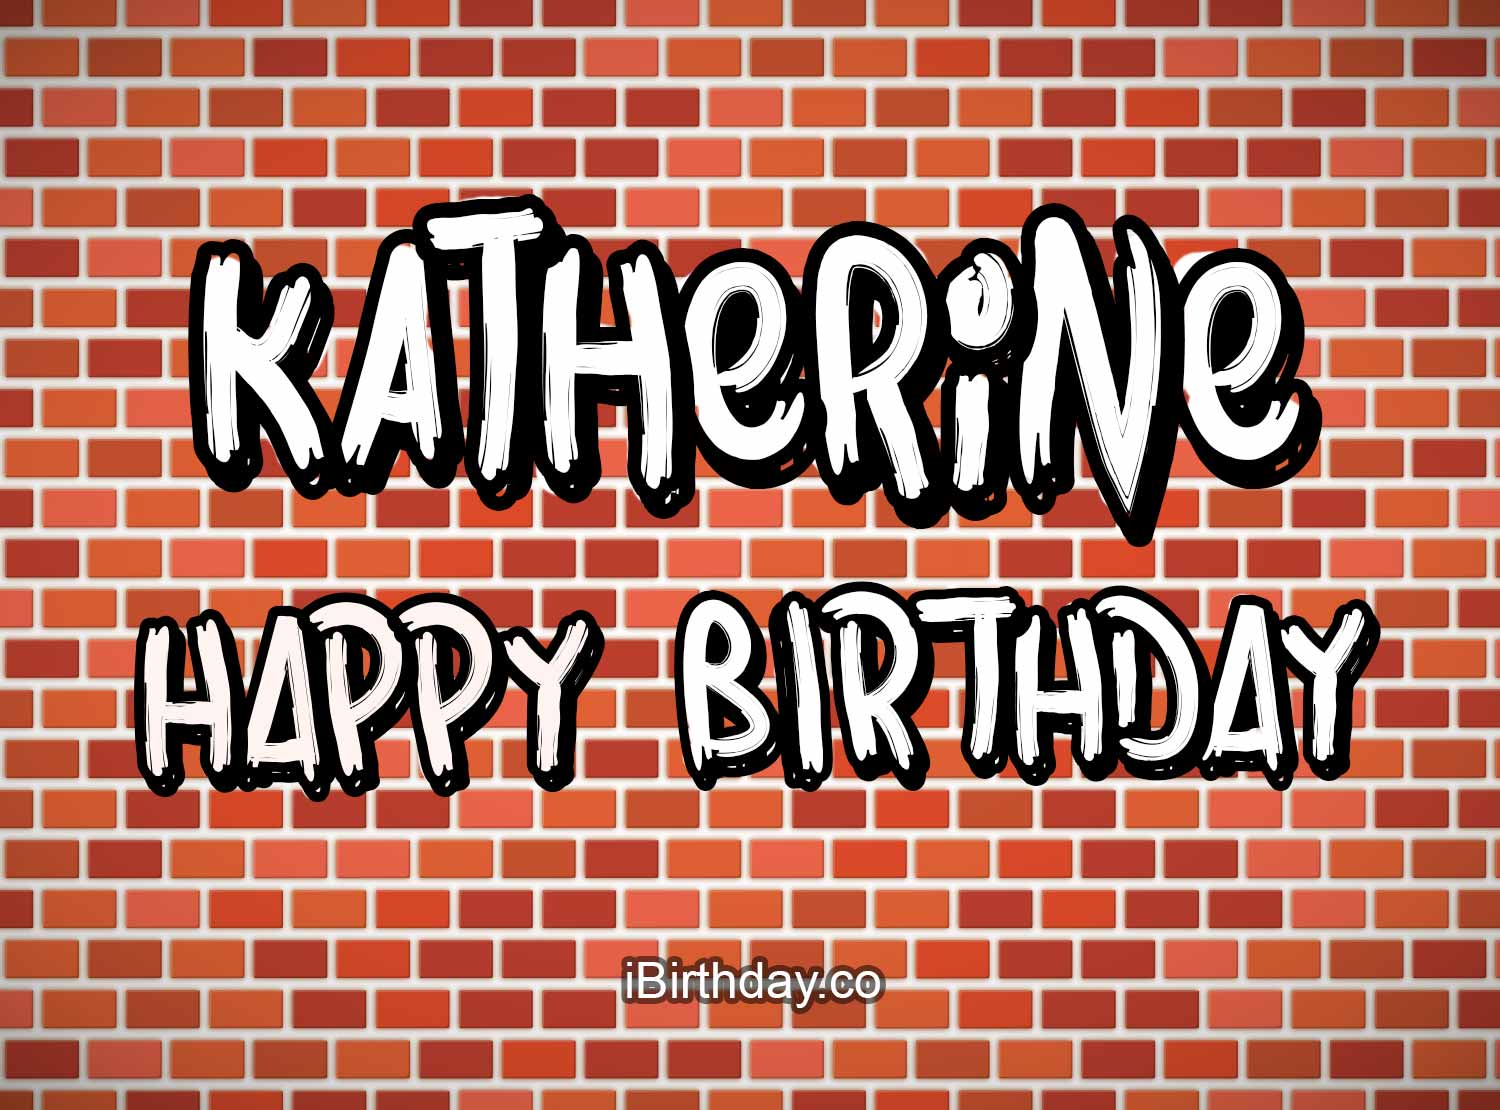 Katherine Graphite Birthday Meme